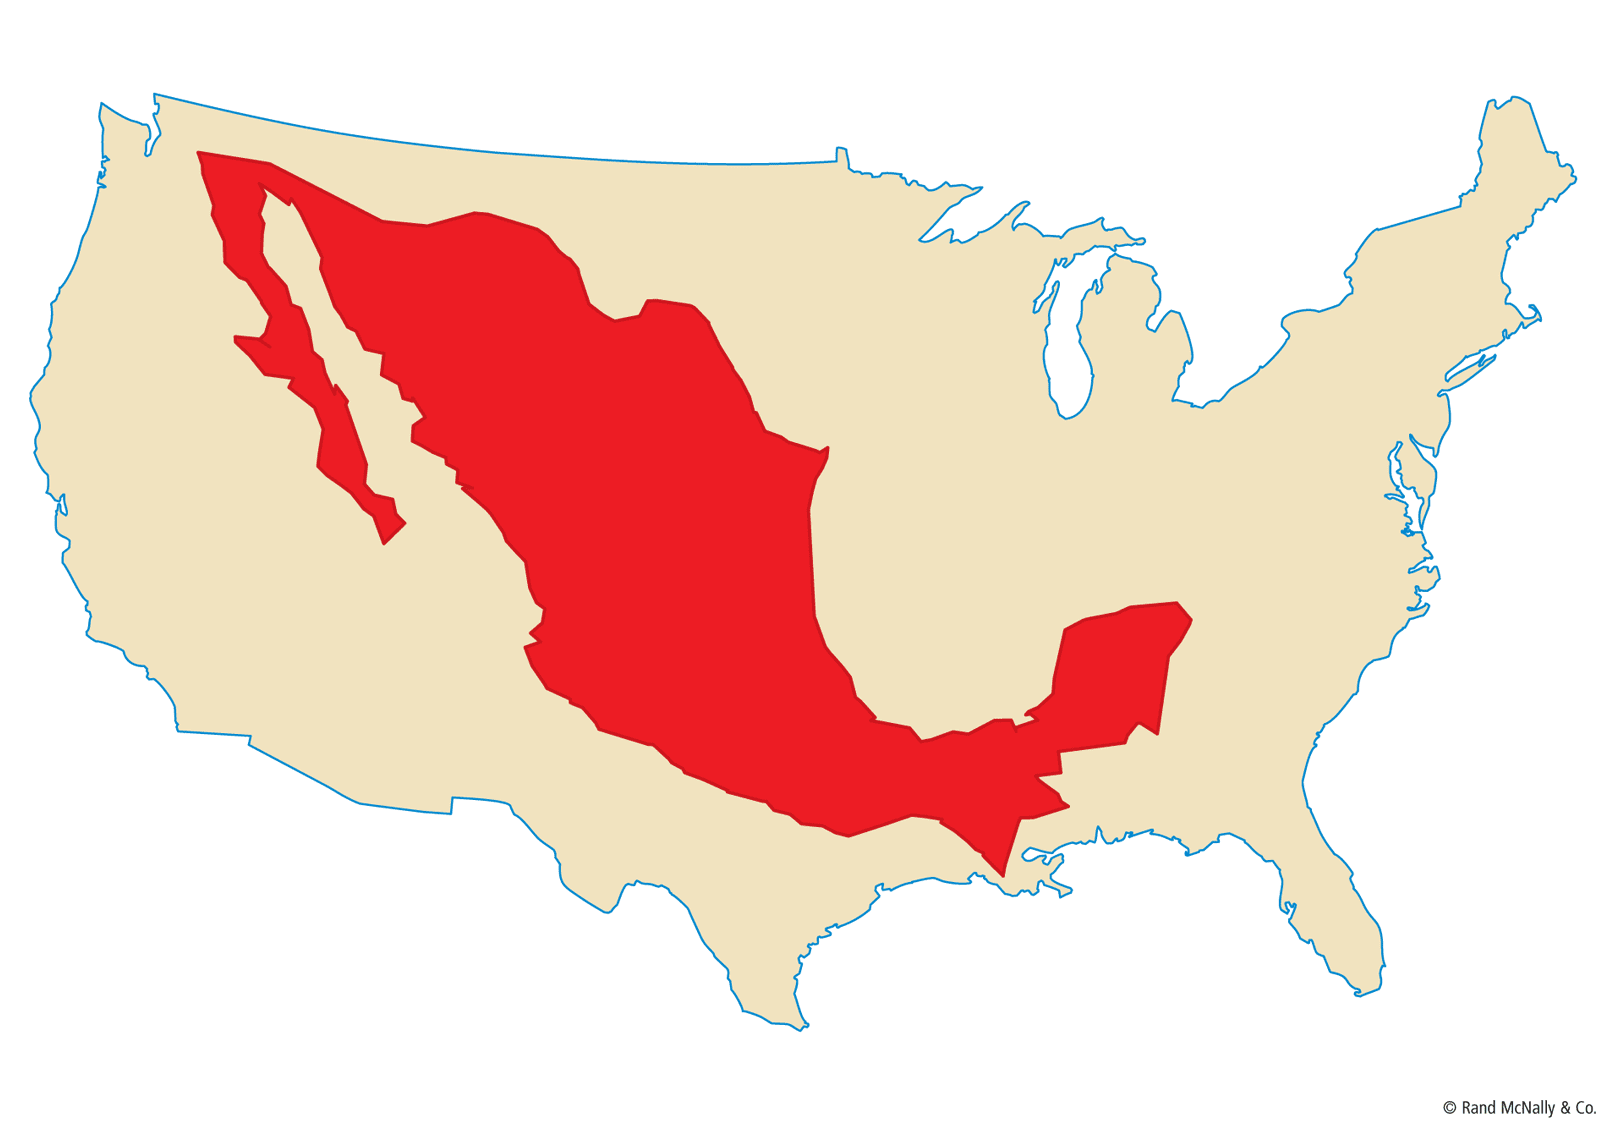 a comparison of the politics between the united states and france In terms of land mass, the united states and europe are similar in size—the united states is 9,833,000 square kilometers while europe is 10,180,000 square kilometers—however, european countries are closer in size to eastern states in america (which are smaller and closer together than western states.